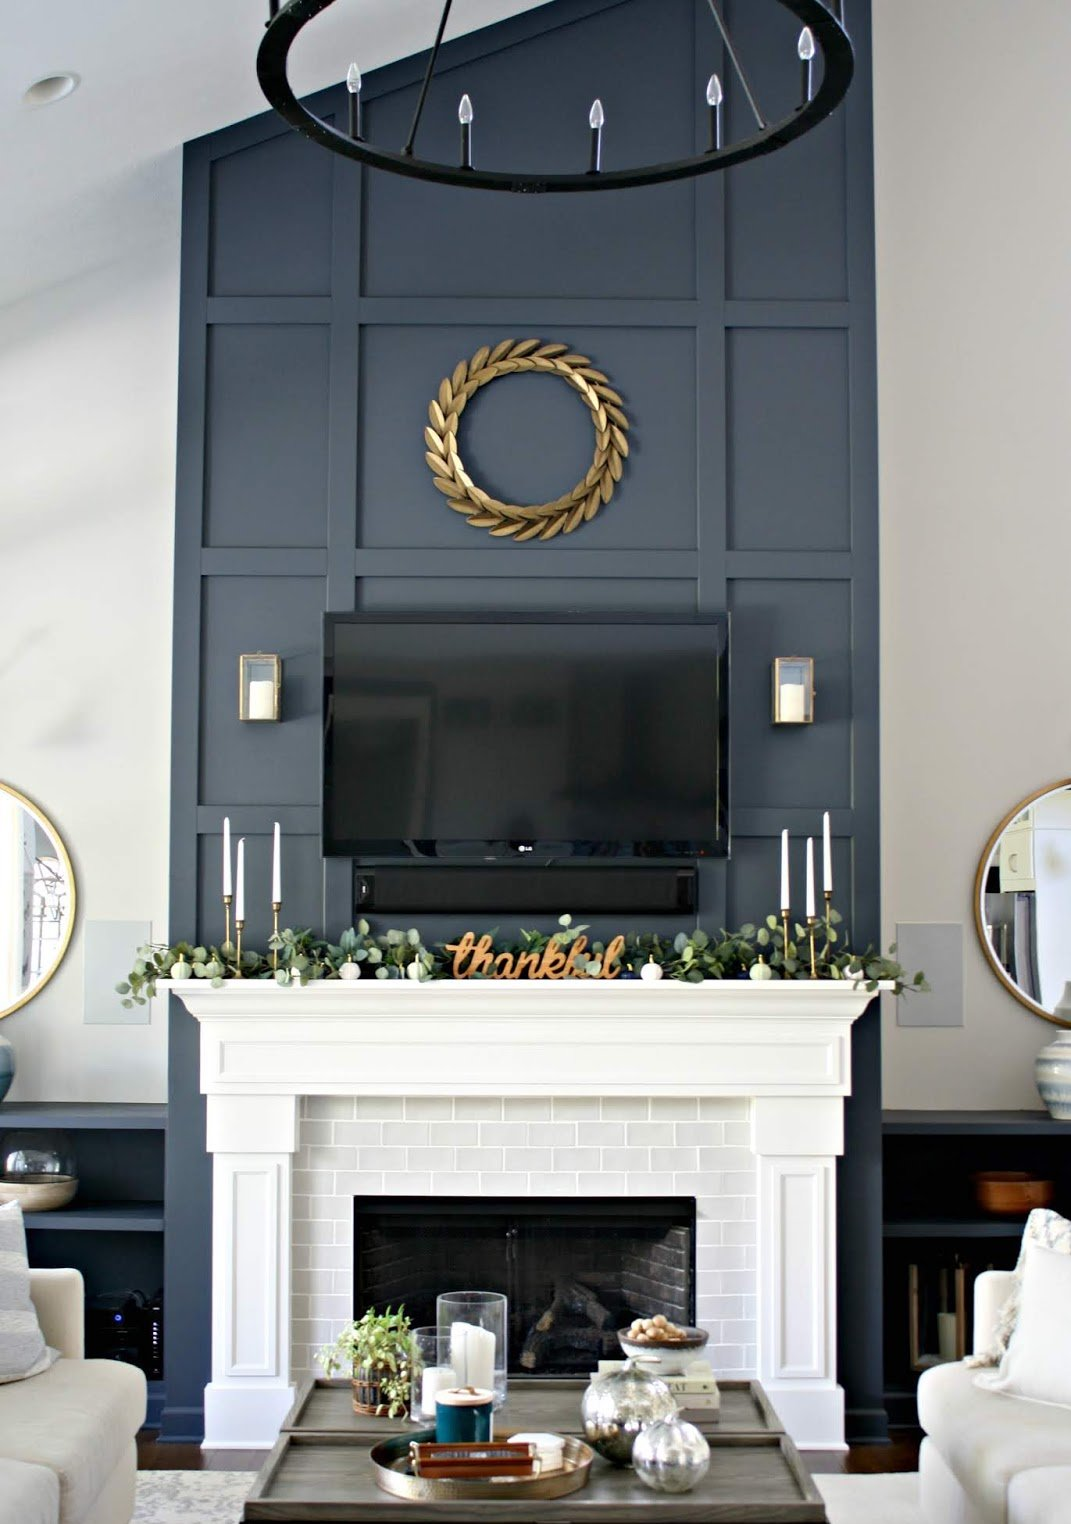 Candles and plants on top of white mantel and fireplace